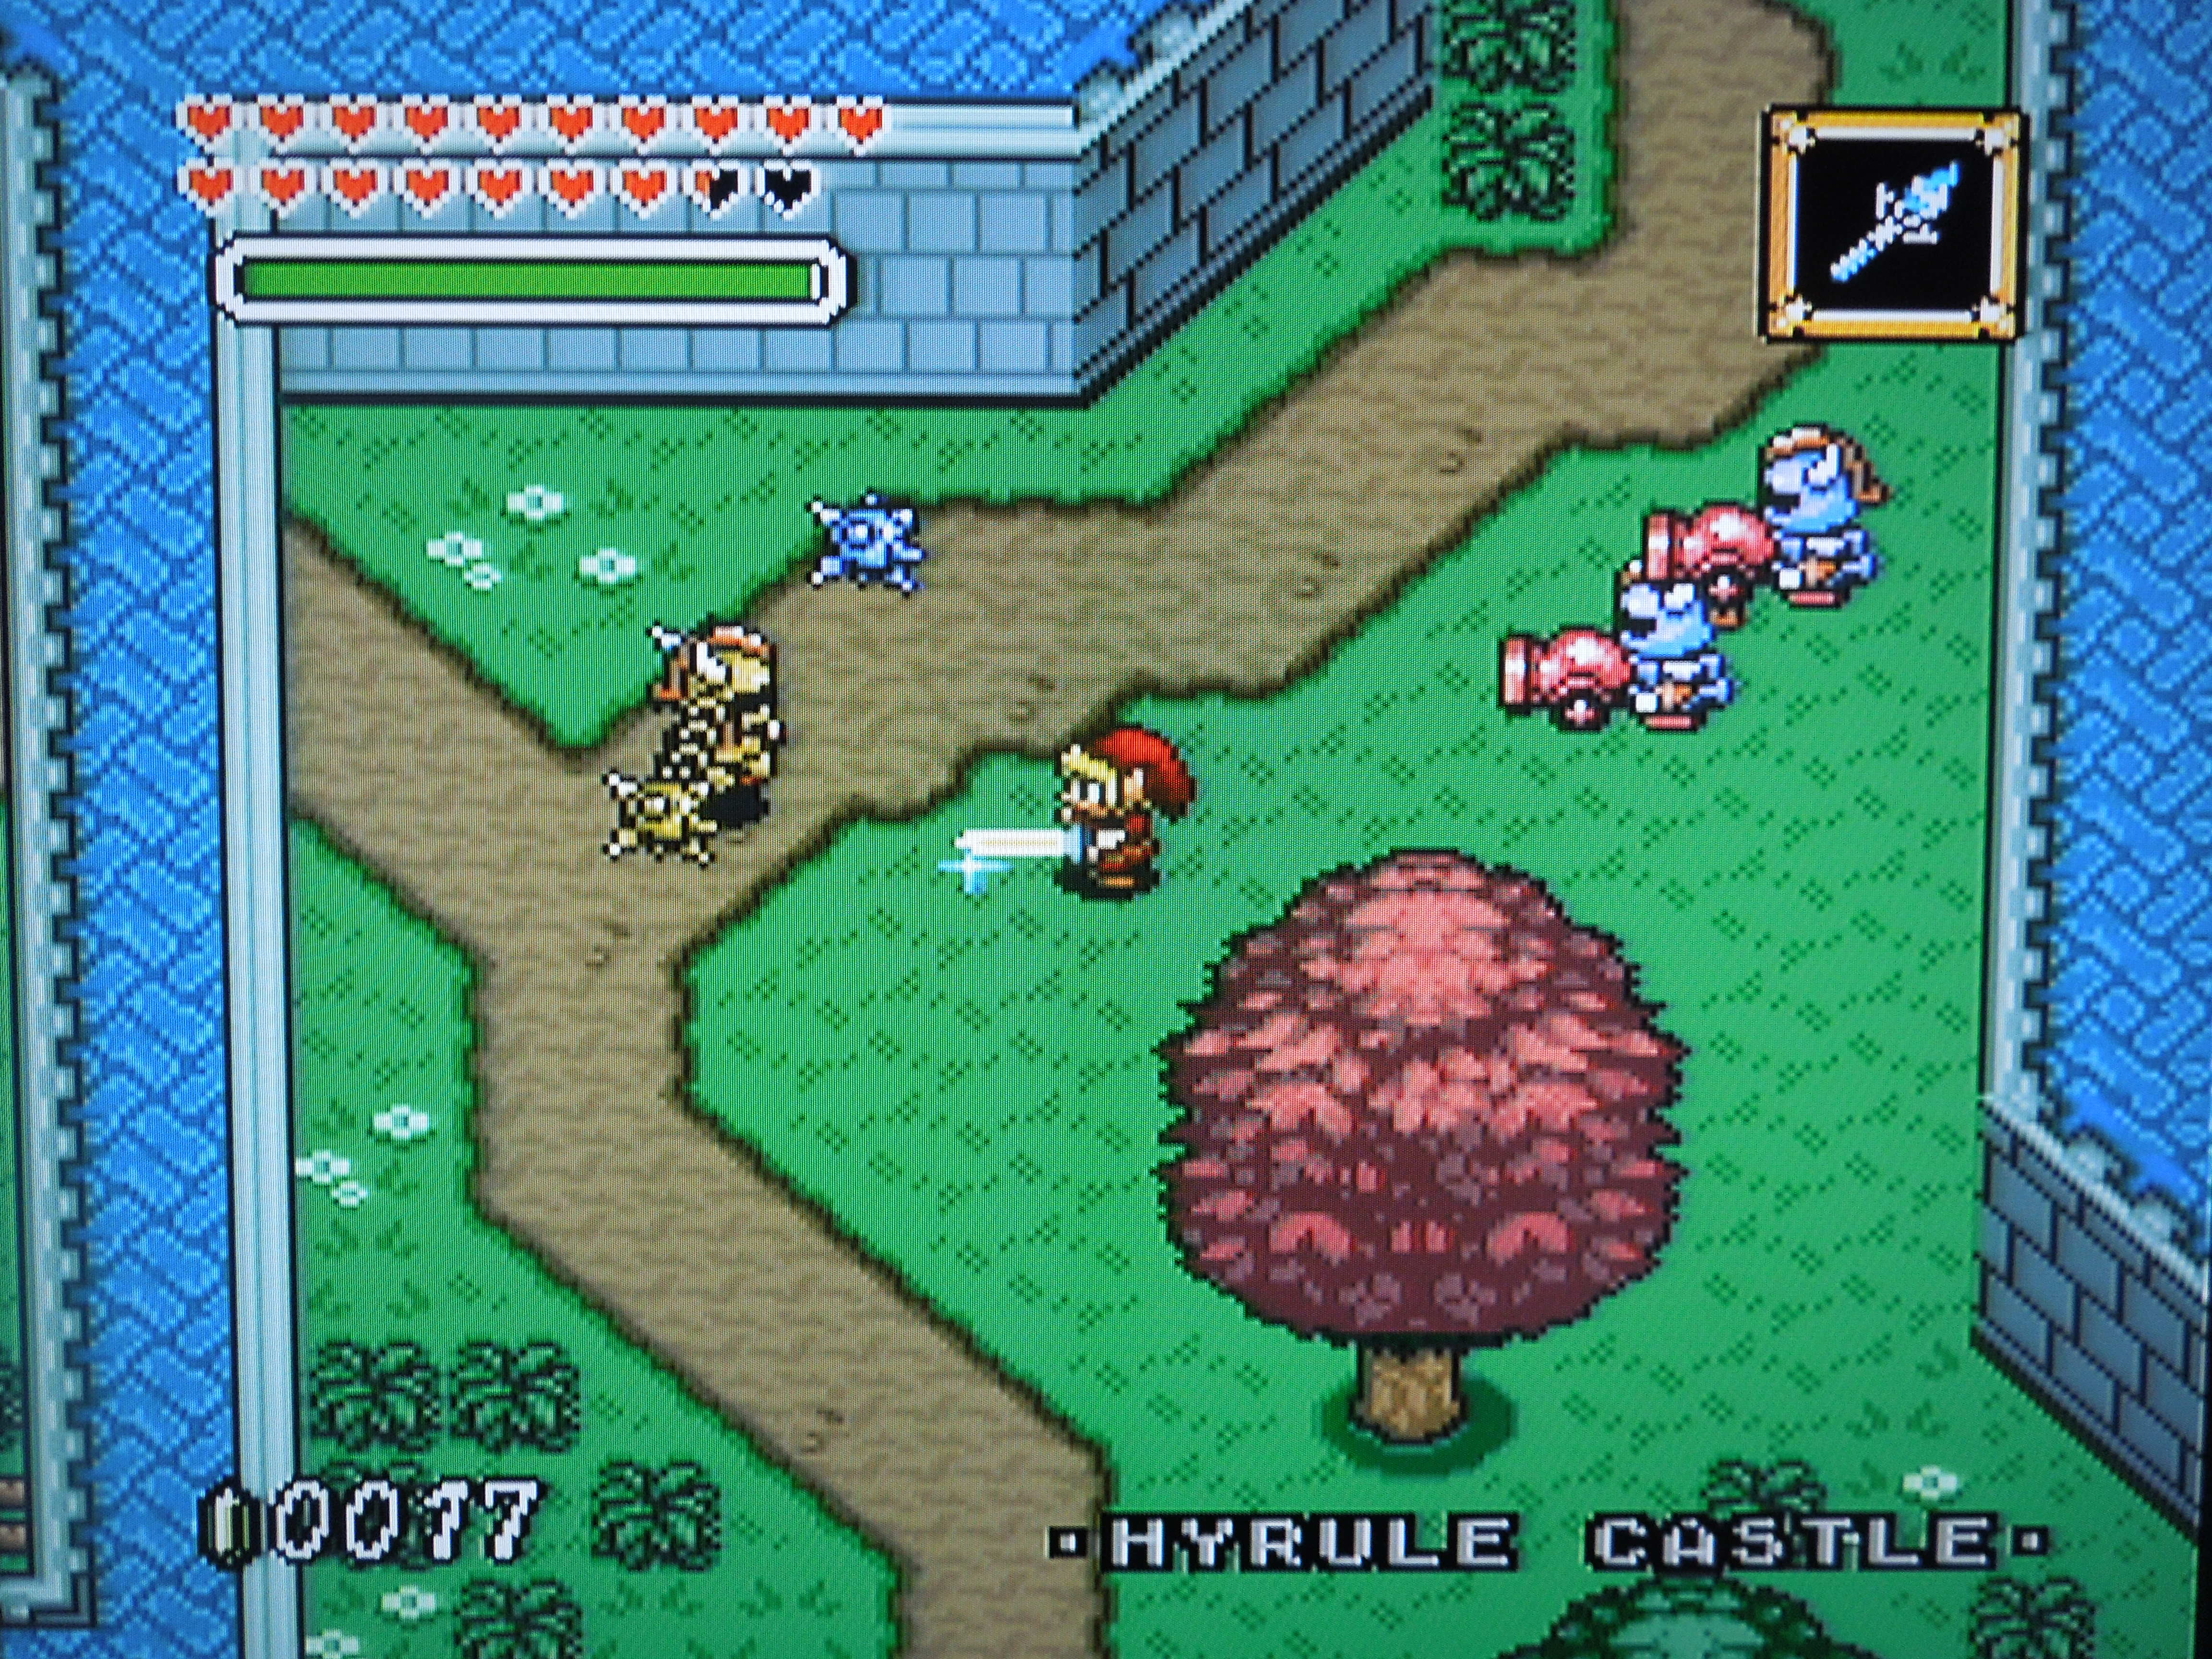 Zelda Parallel Worlds Remodel Review SNES | Obscure Video Games